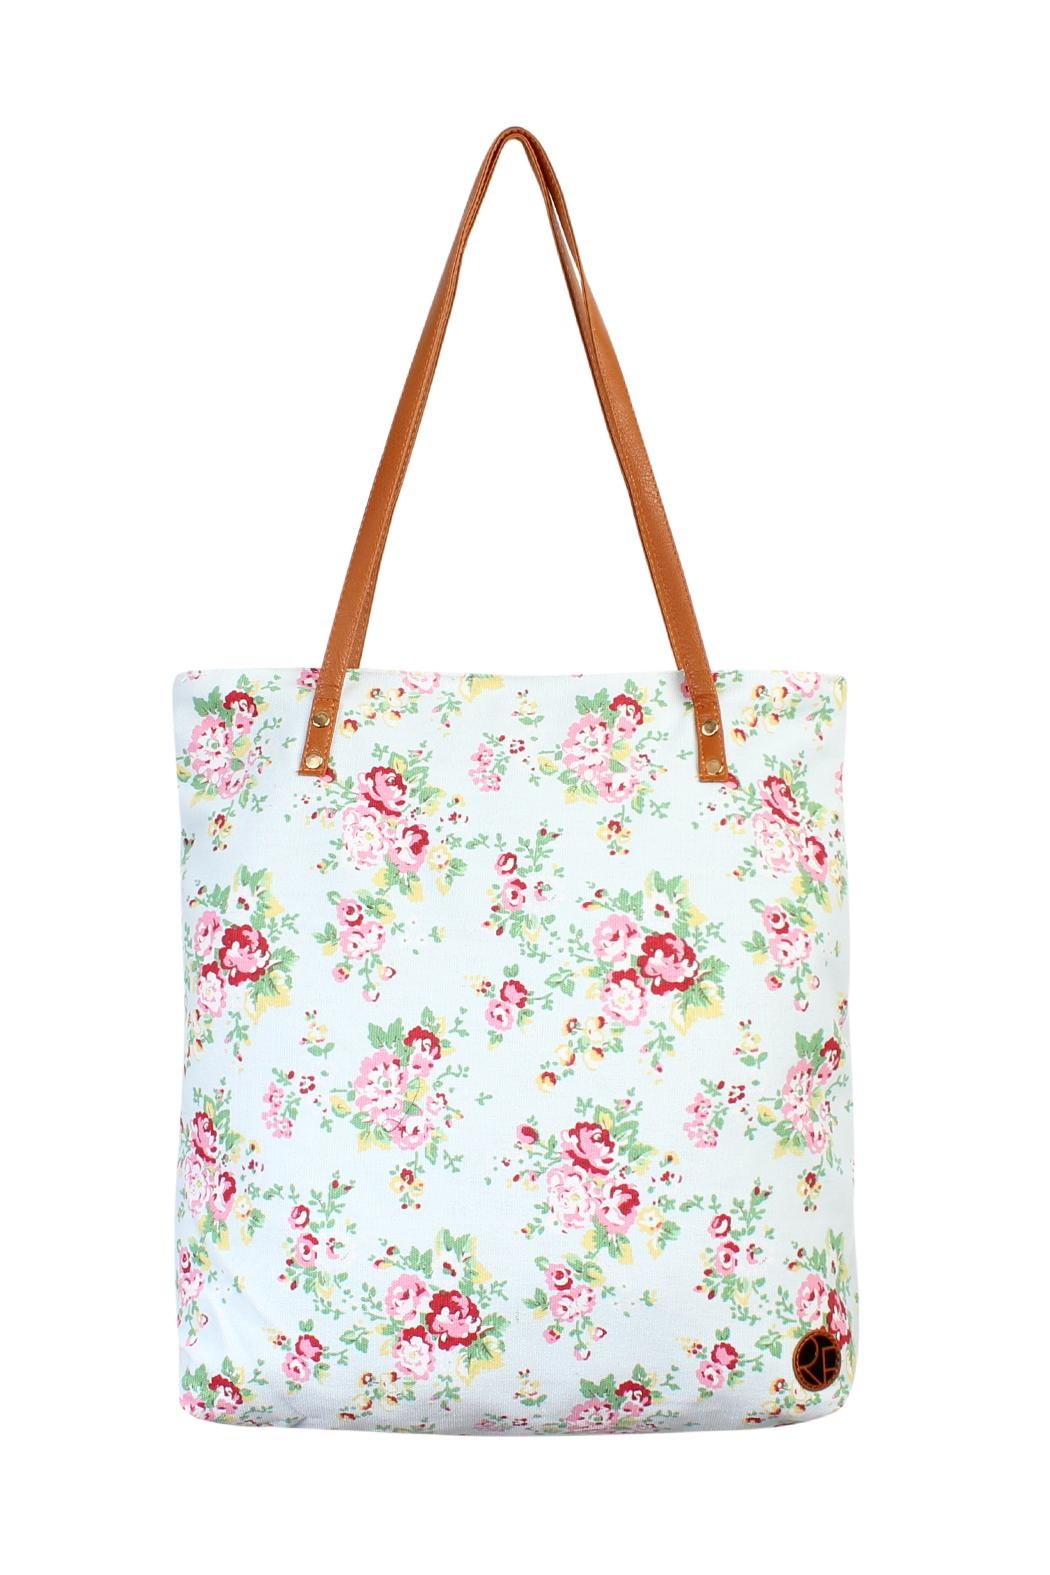 Riah Fashion Floral Print Tote Bag-Light Blue - Main Image